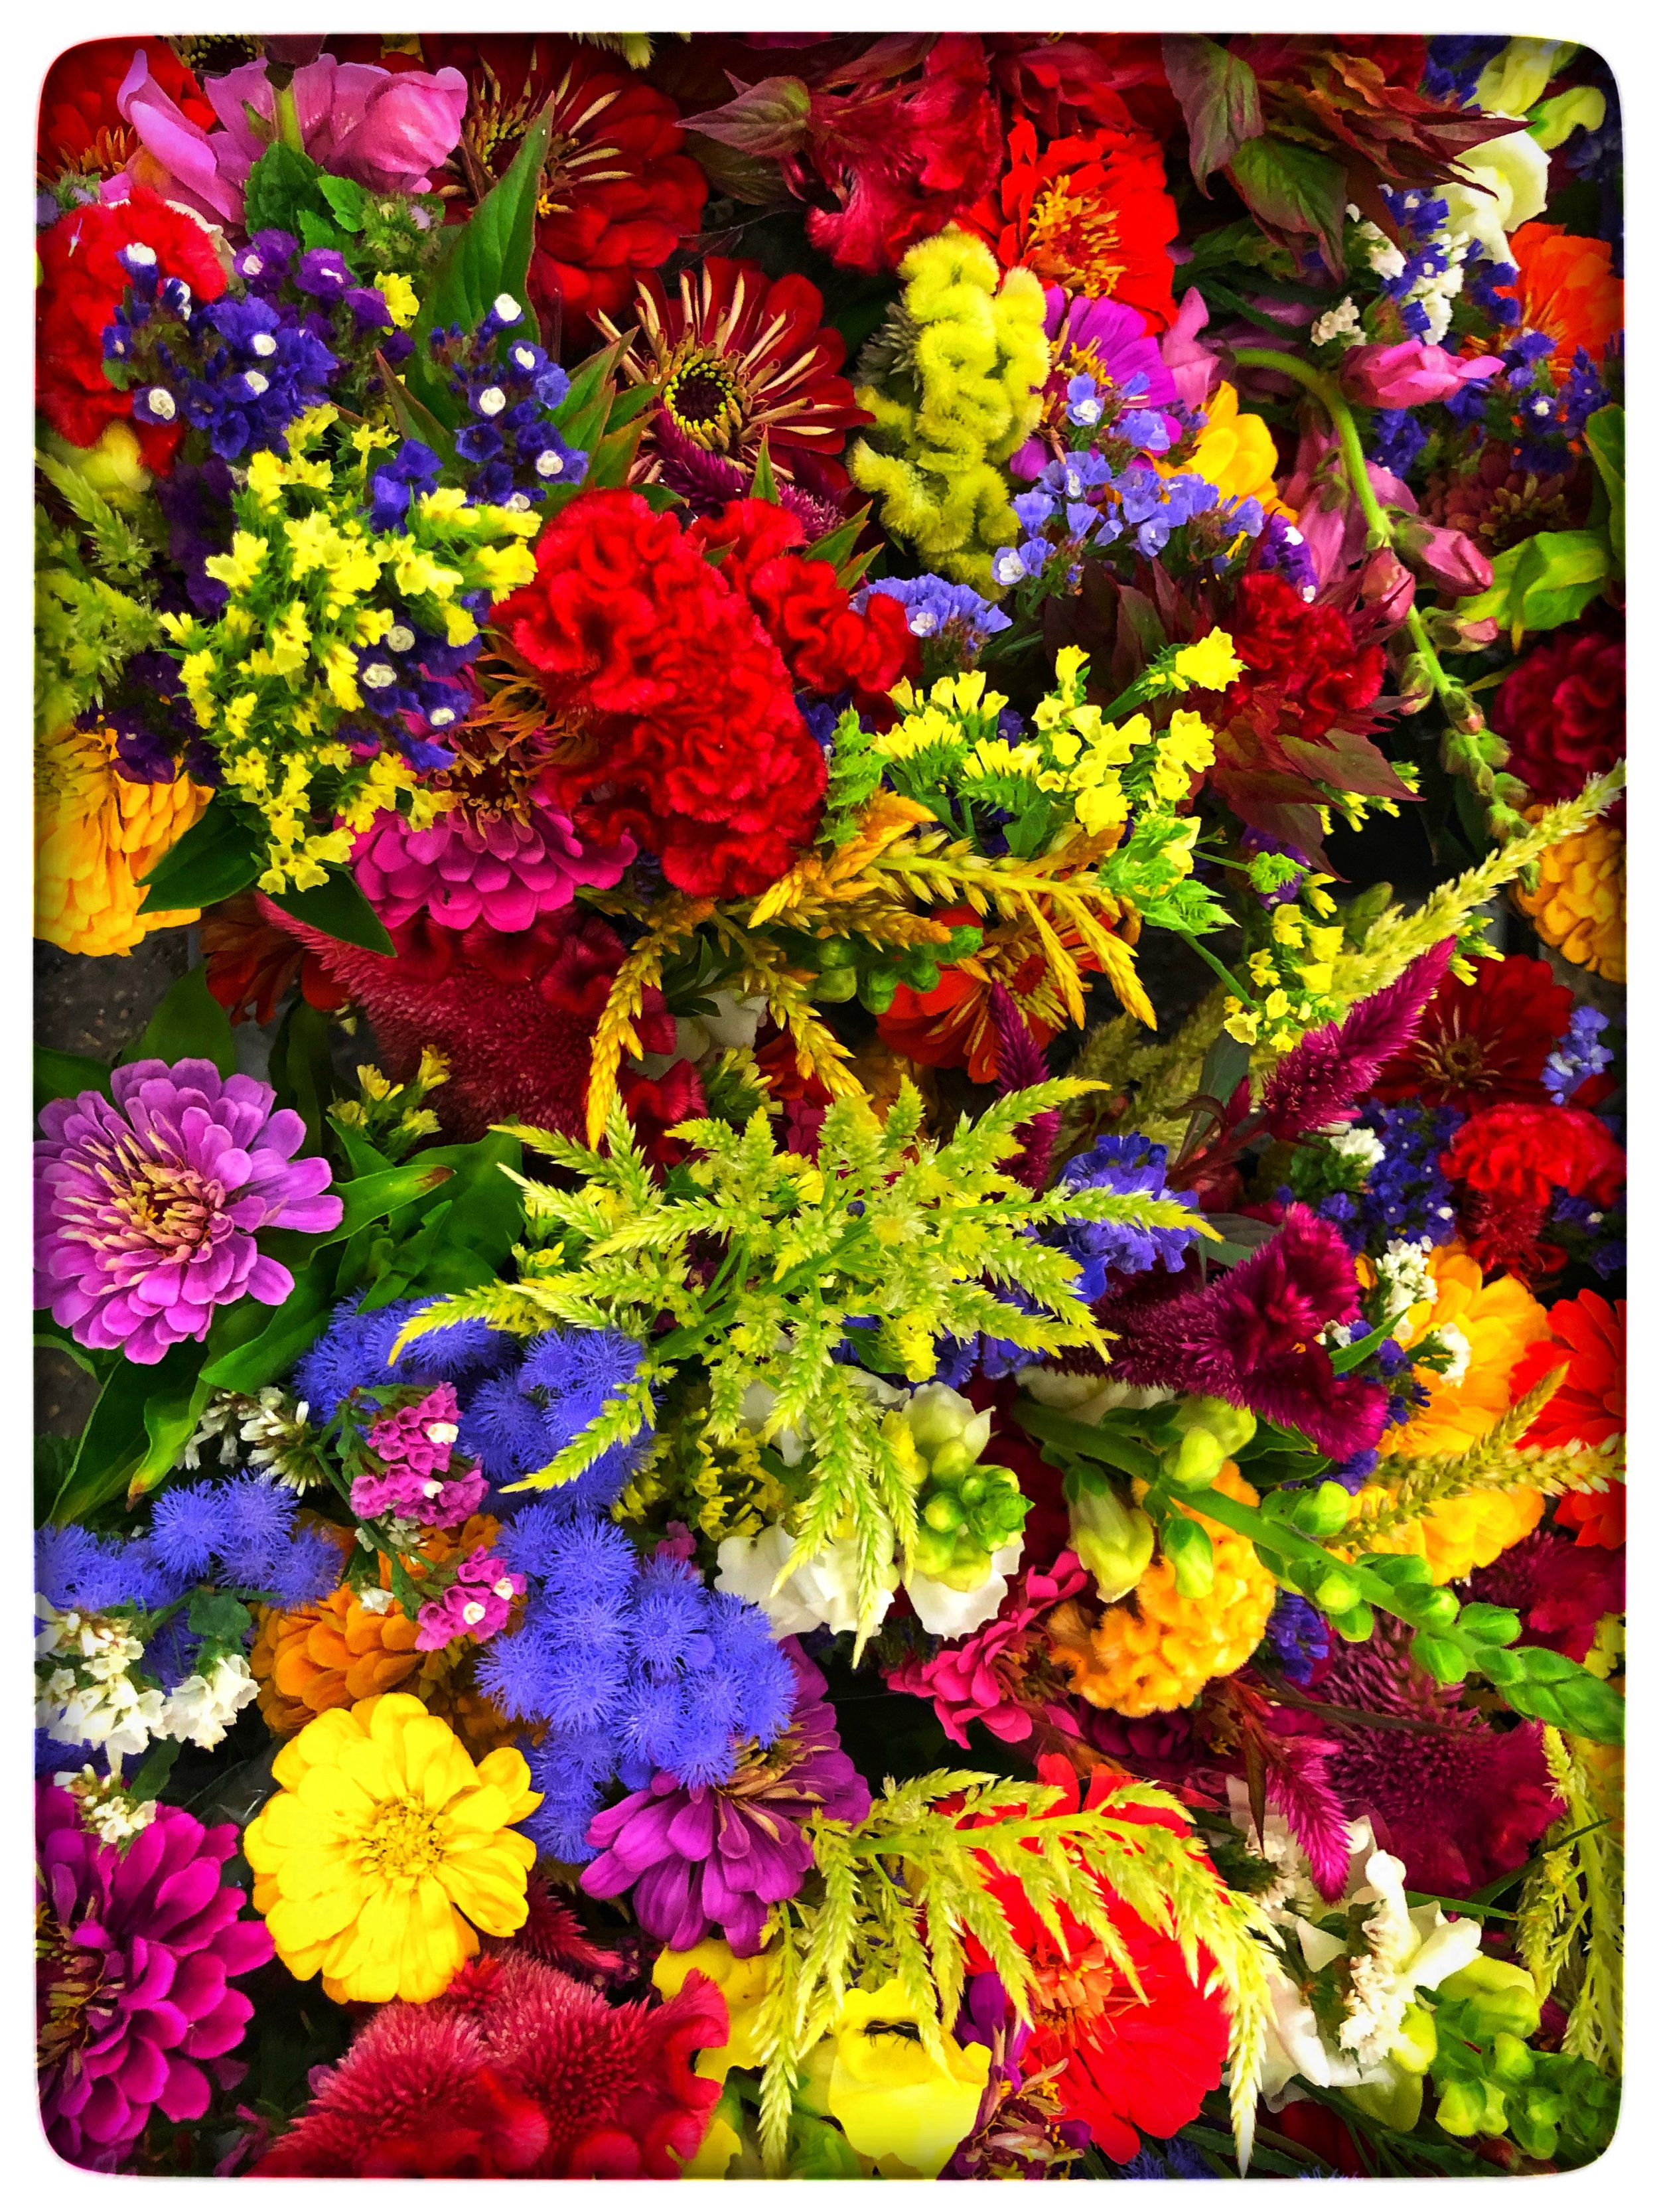 Locally grown field flowers sold exclusively to Russo's from Macone Farm in Concord.